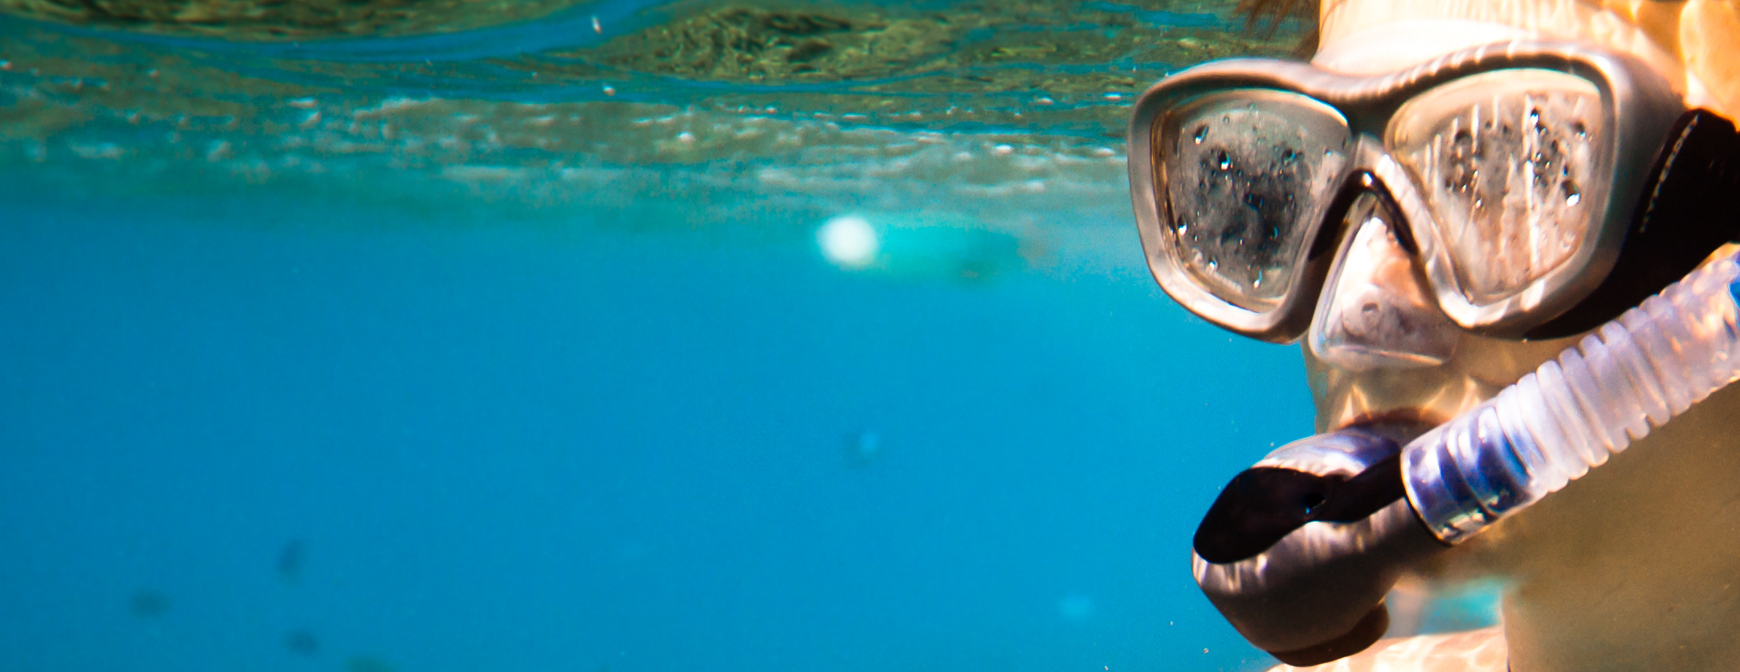 Man snorkelling in the sea